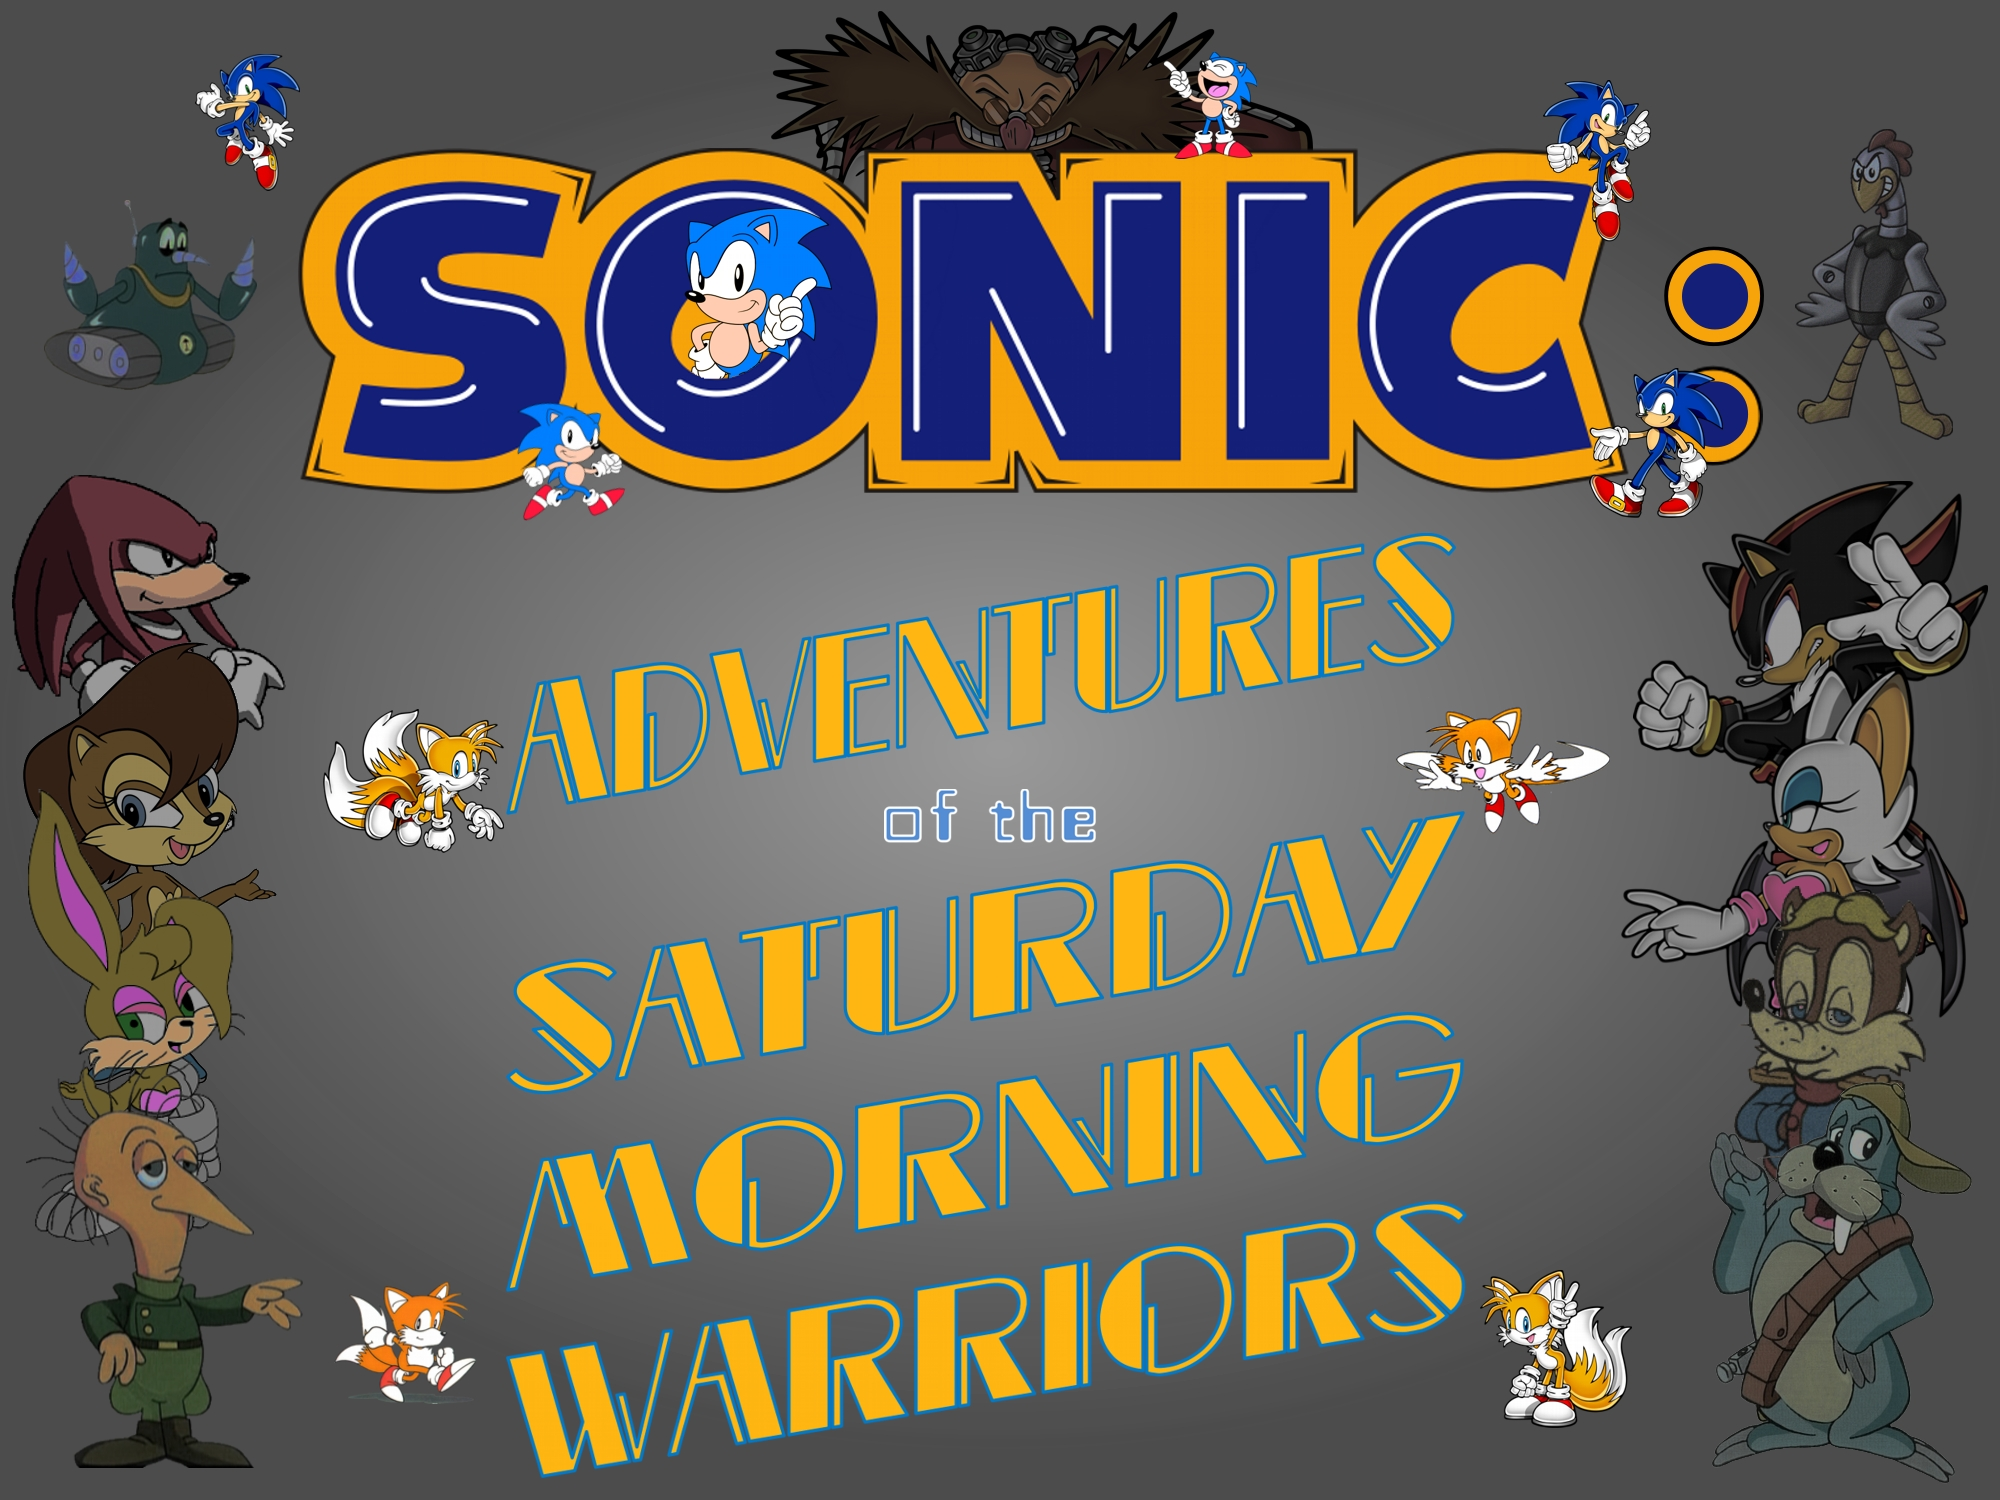 Sonic: Adventures of the Saturday Morning Warriors